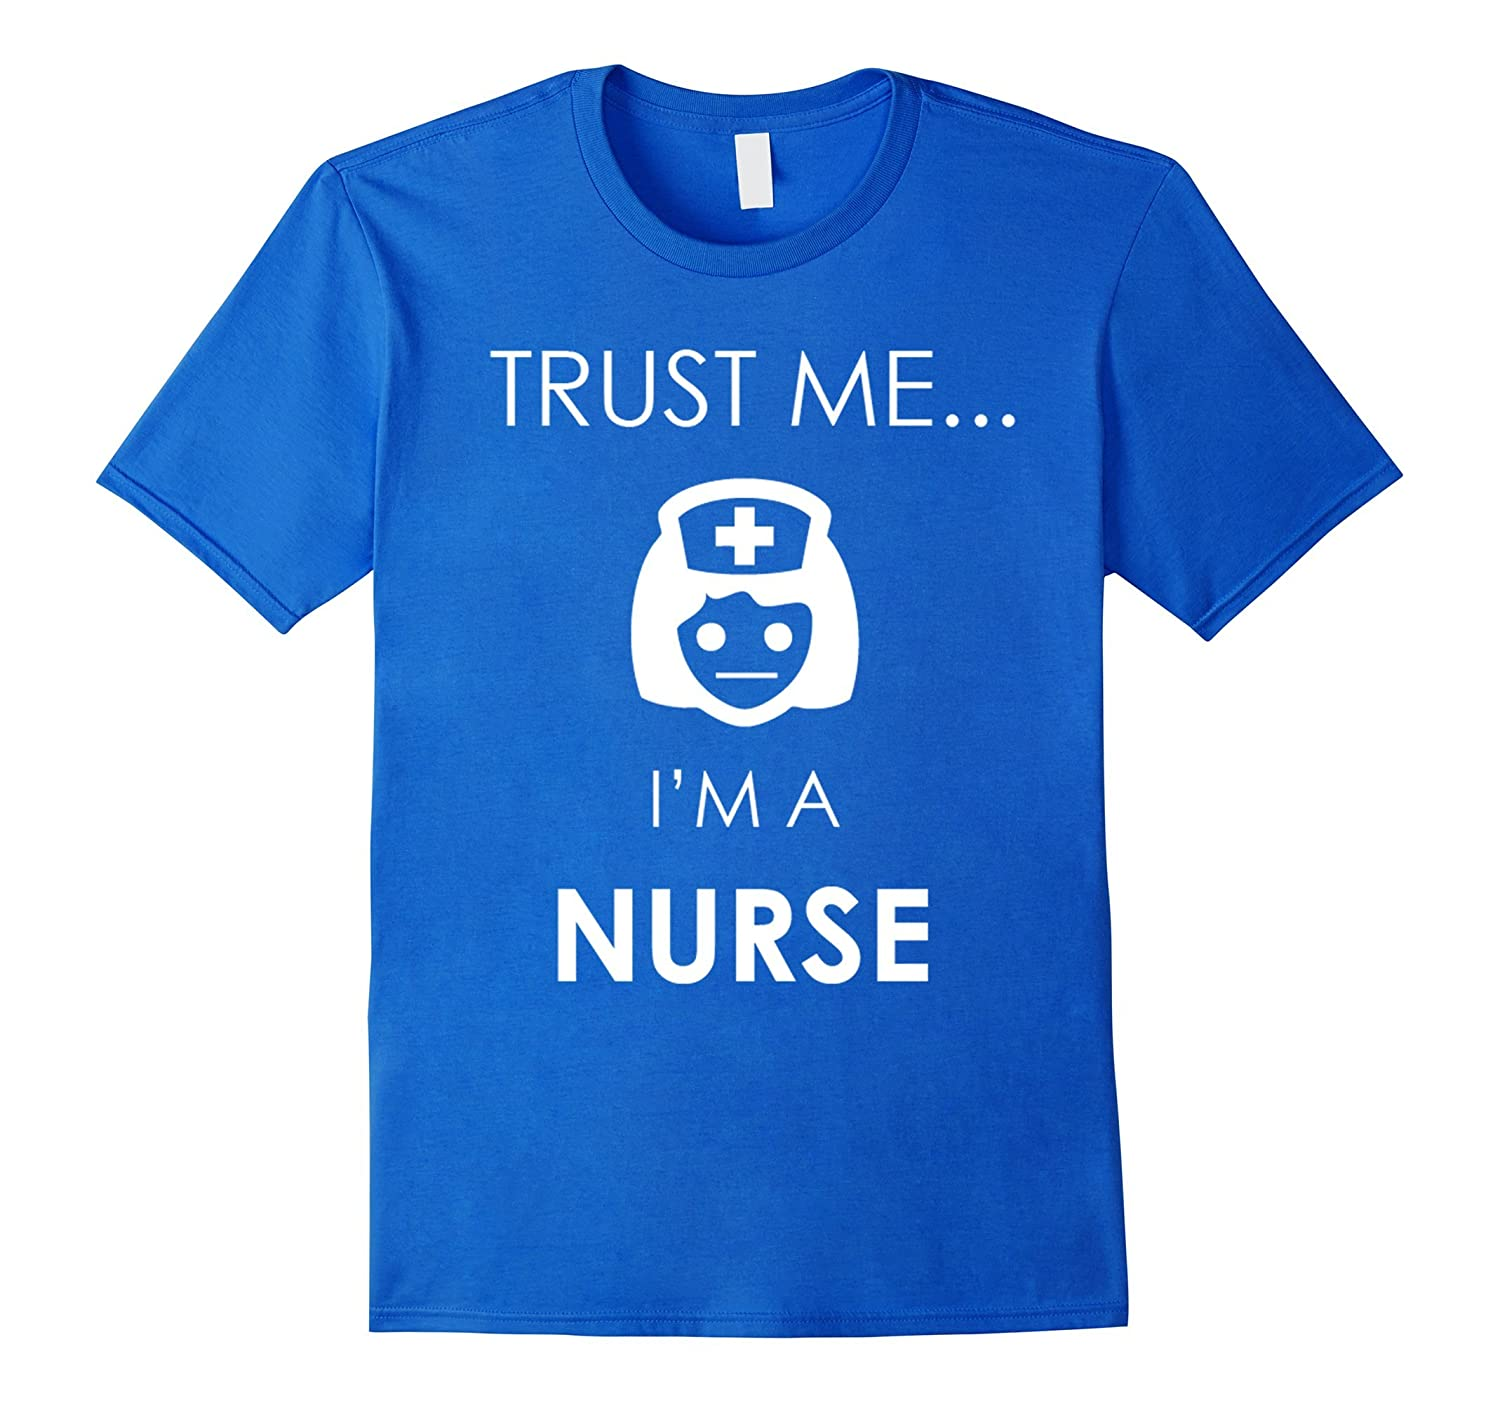 Nursing and care Tshirt I am a Nurse Hospital tee shirt-TD